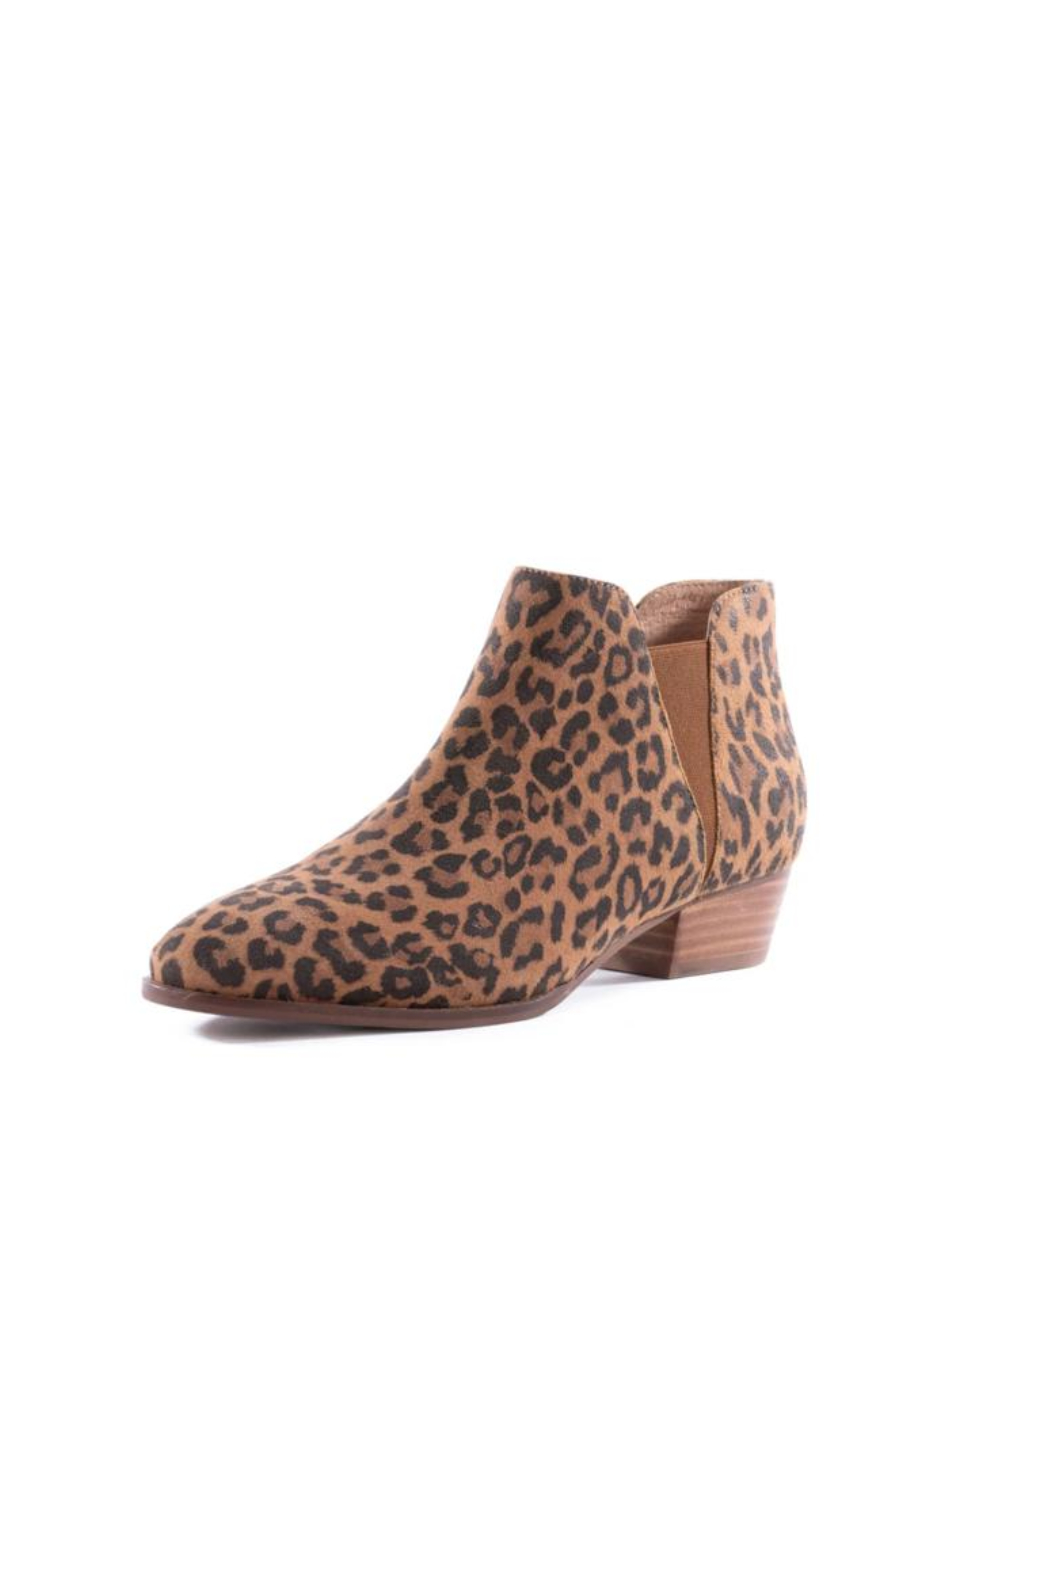 Seychelles Waiting For You Leather Bootie - Front Full Image